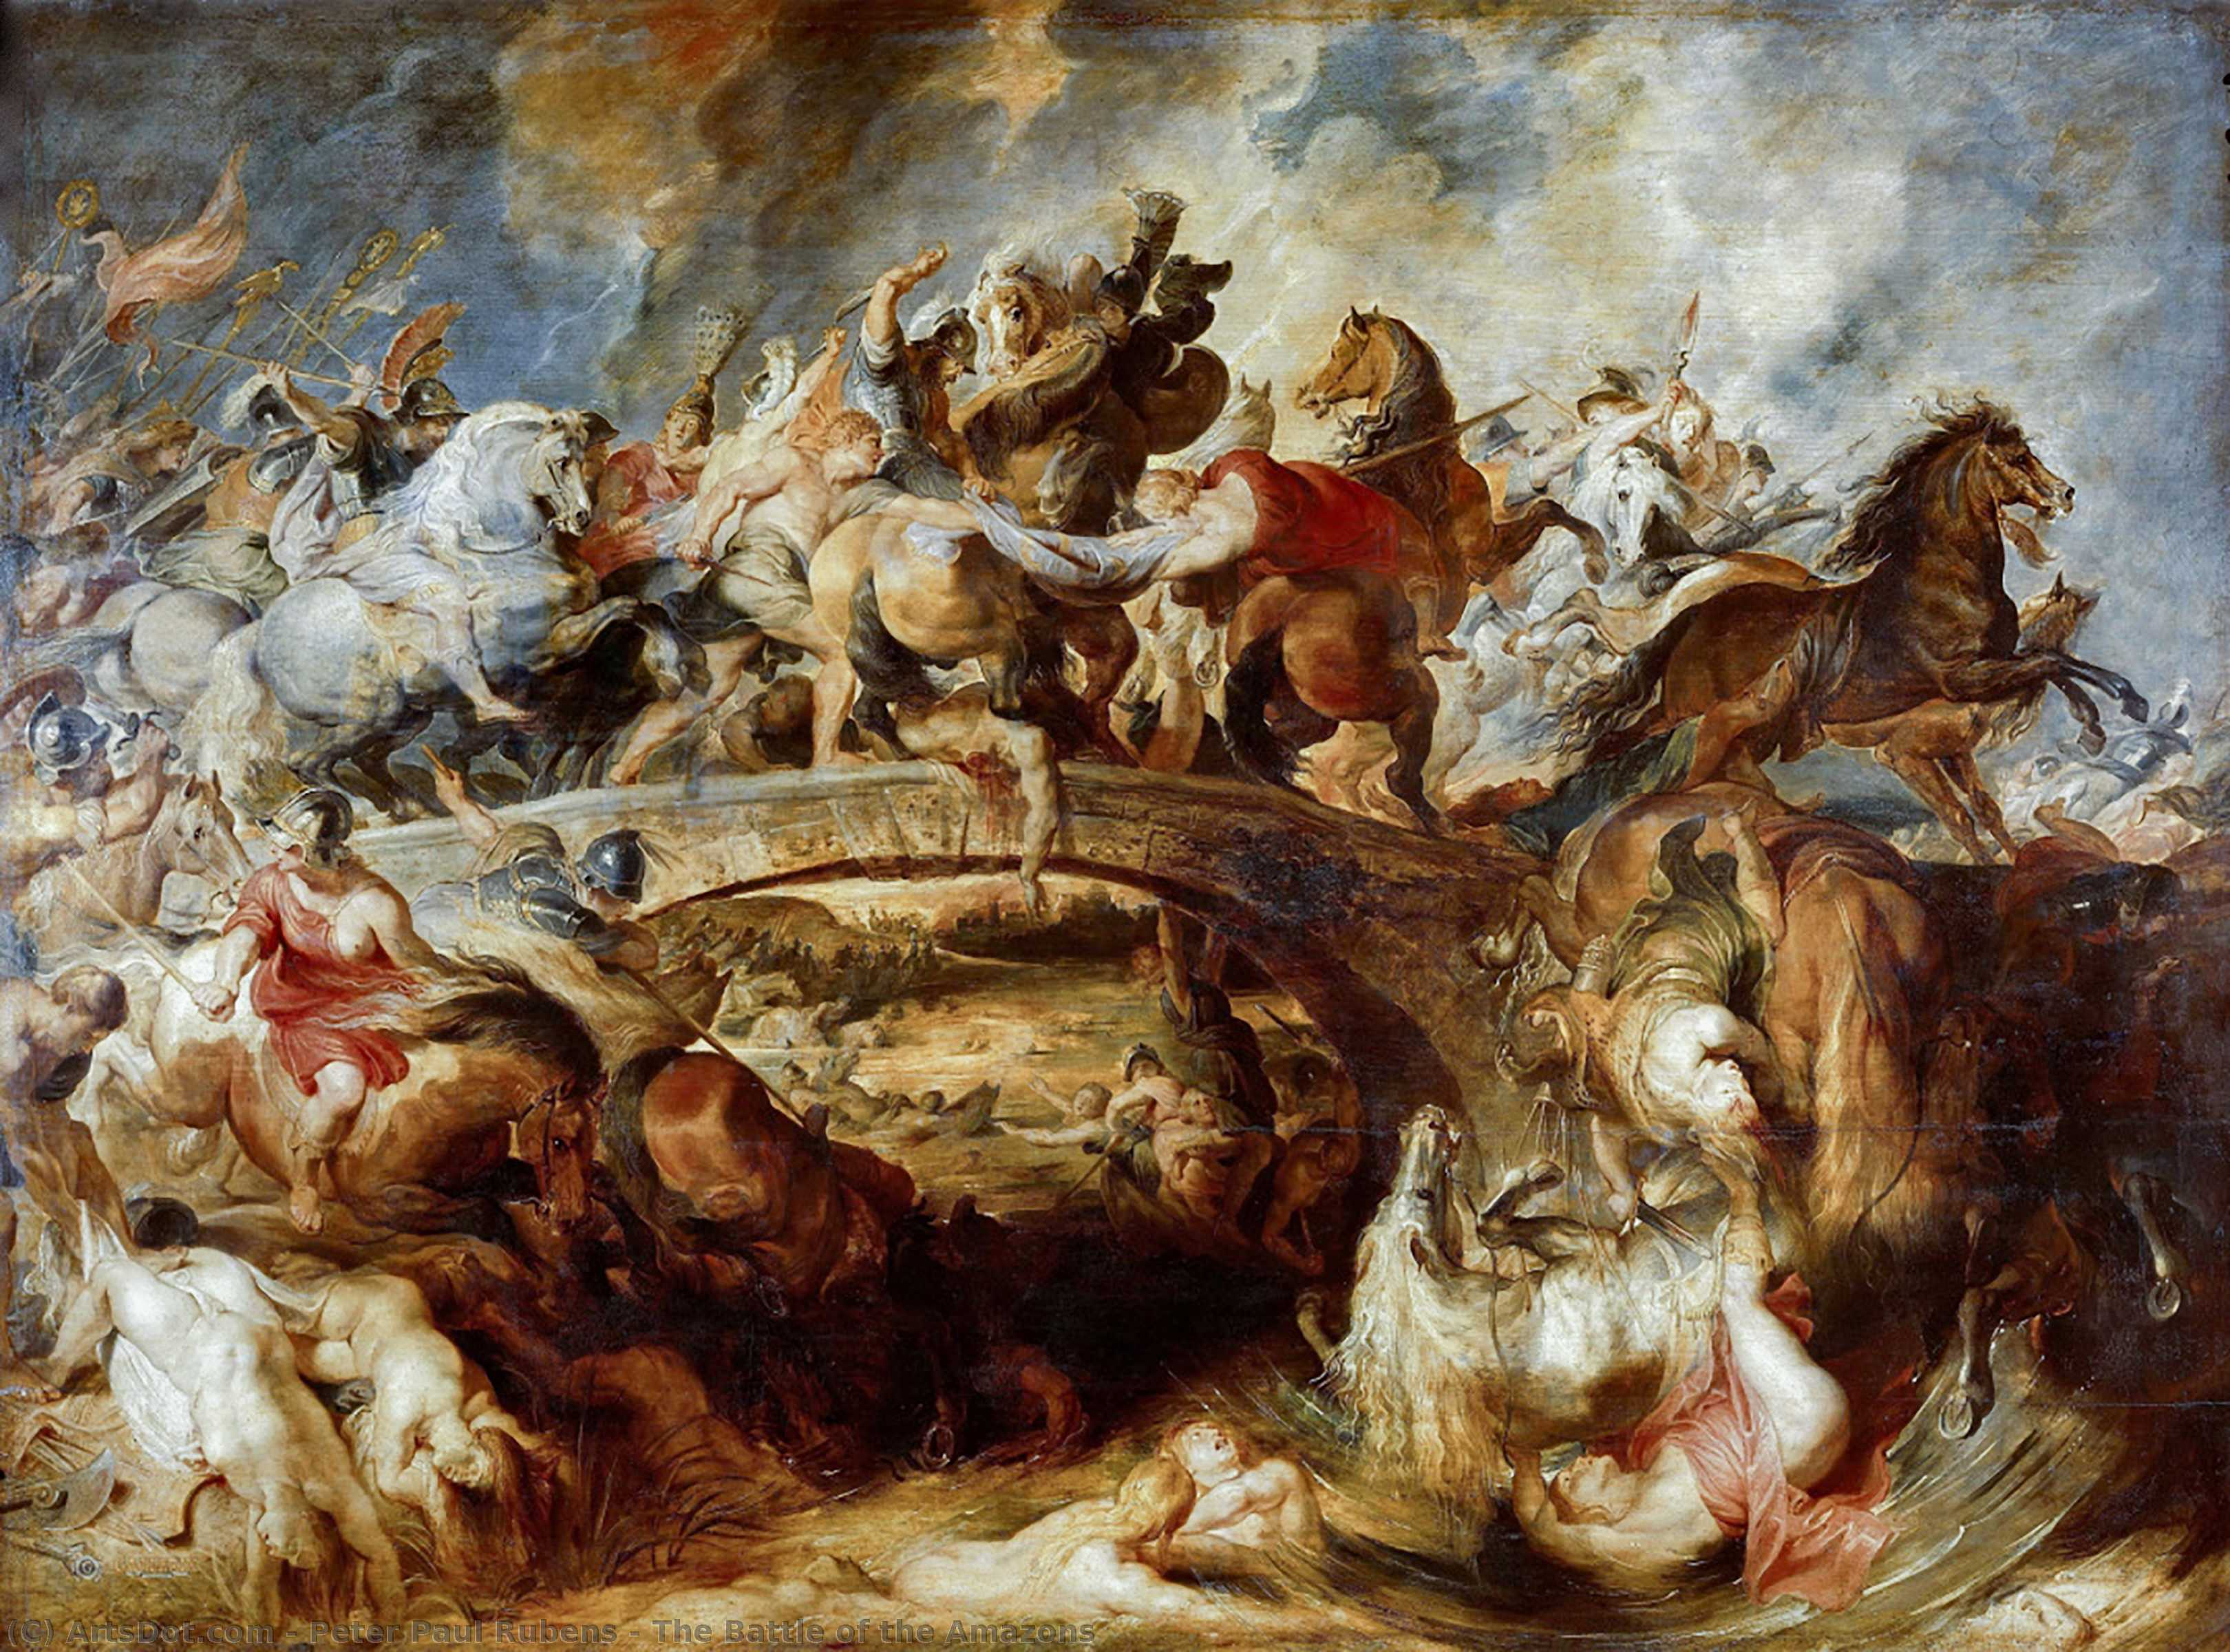 Wikioo.org - The Encyclopedia of Fine Arts - Painting, Artwork by Peter Paul Rubens - The Battle of the Amazons